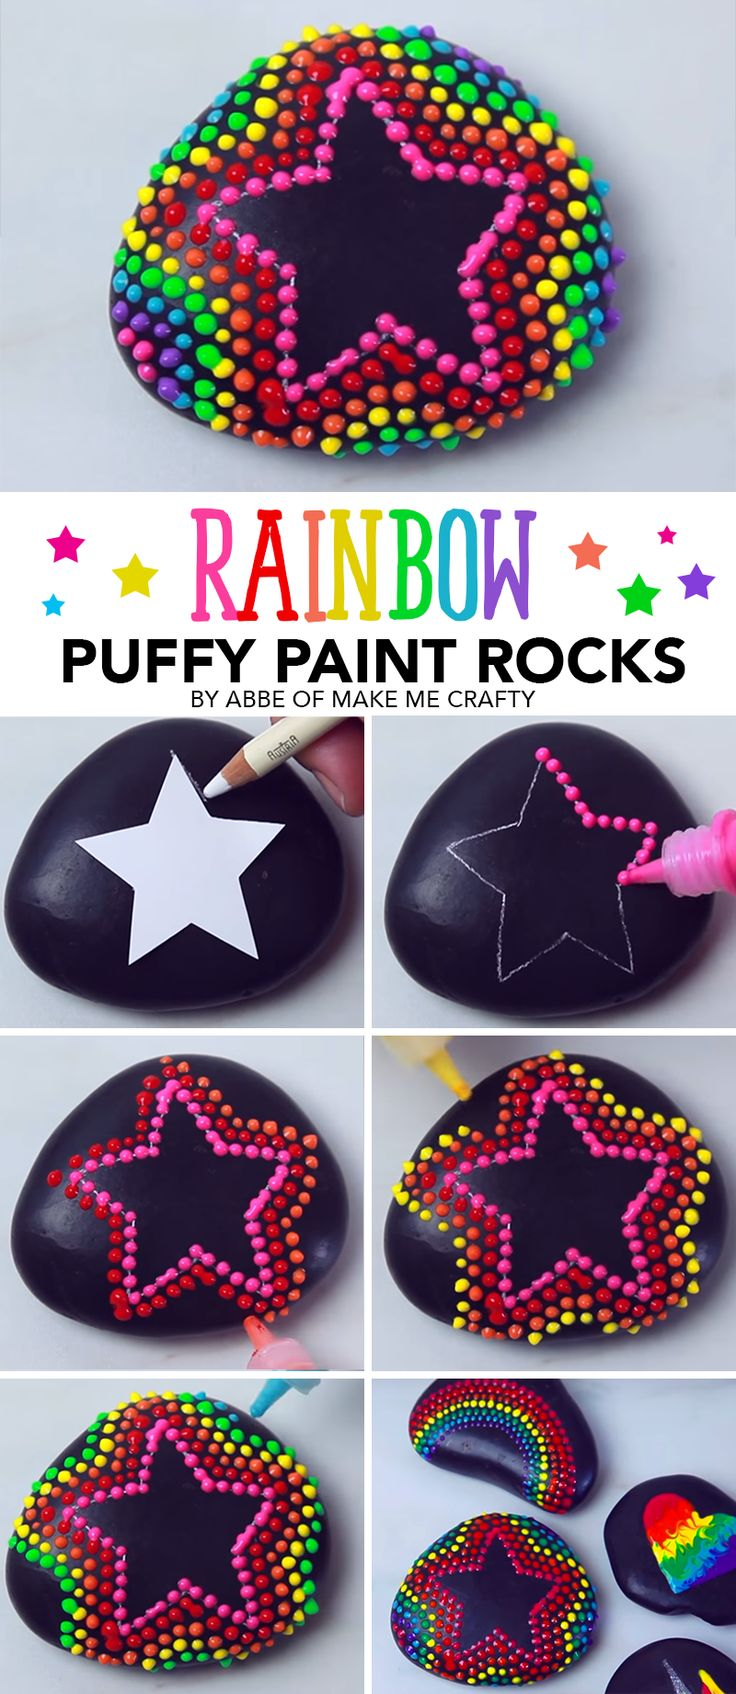 Make these cute puffy paint rocks using Tulip Dimensional Paint! Get this DIY from Abbe of Make me Crafty and make your own painted rocks!